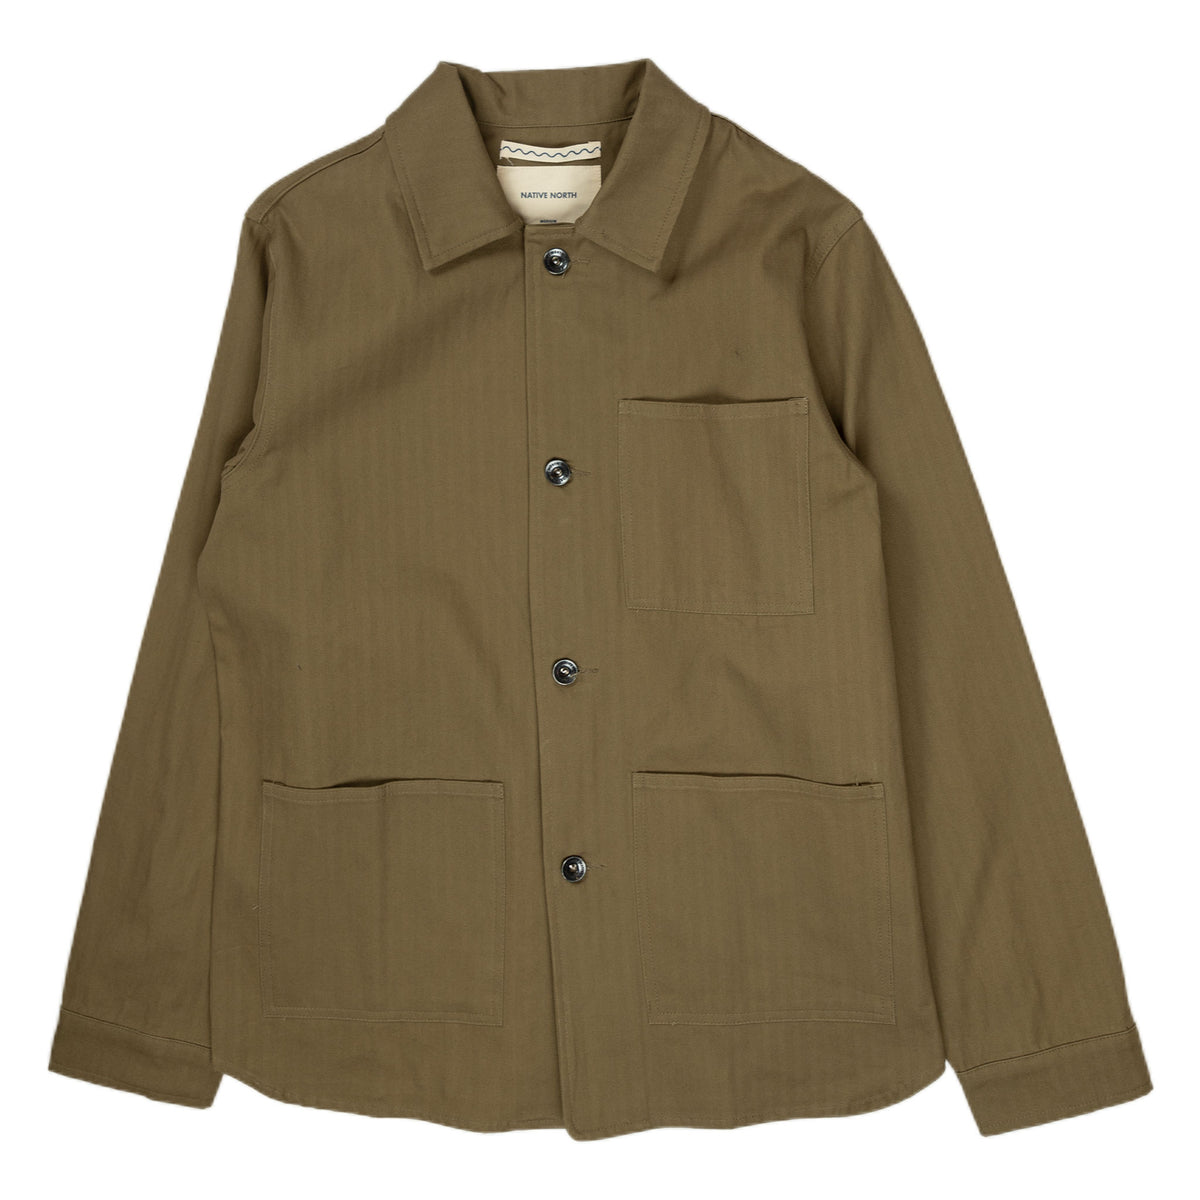 Native North Herringbone Utility Jacket in Green